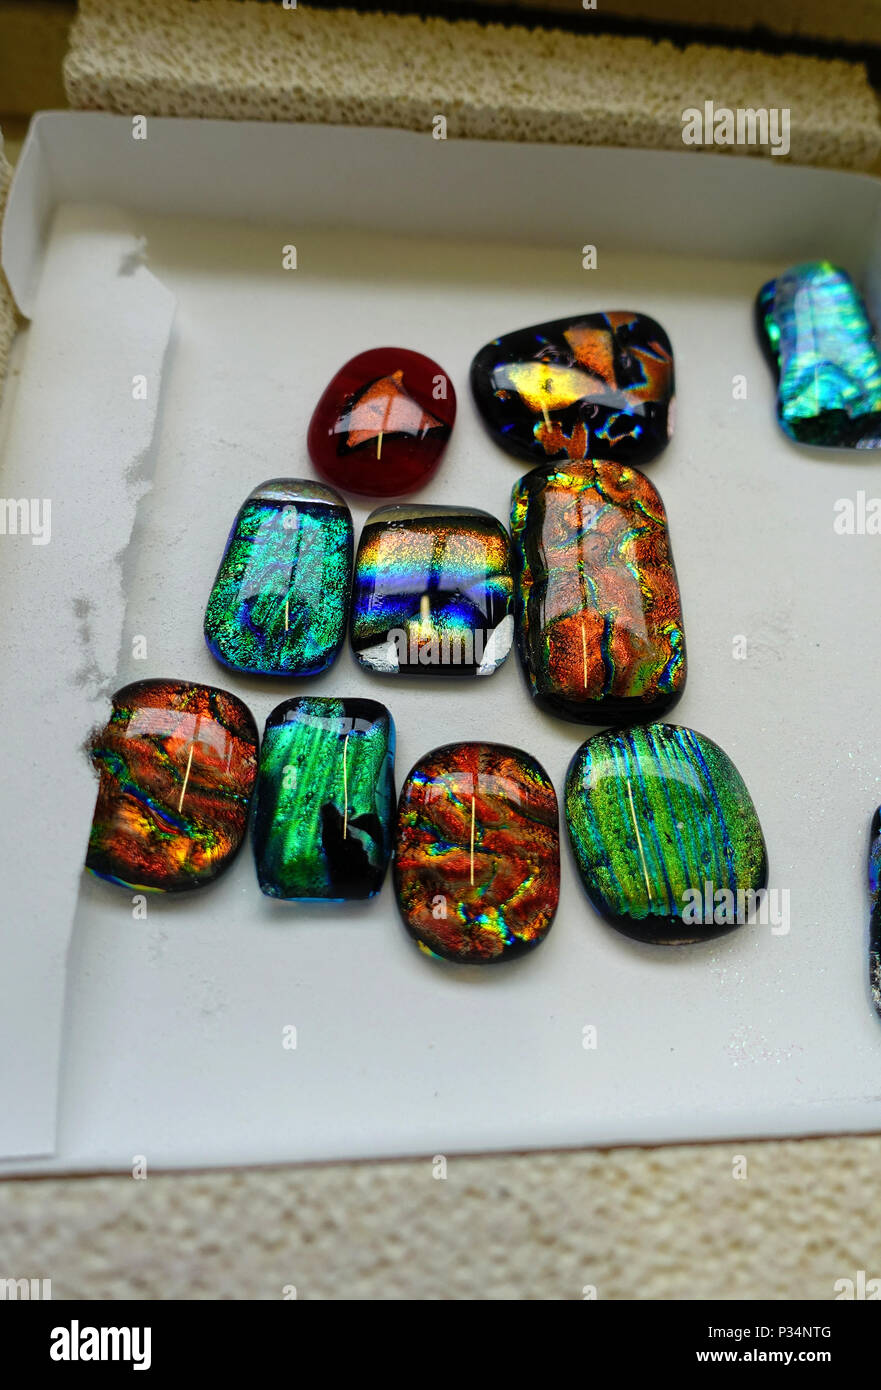 Glass fusing project - Stock Image